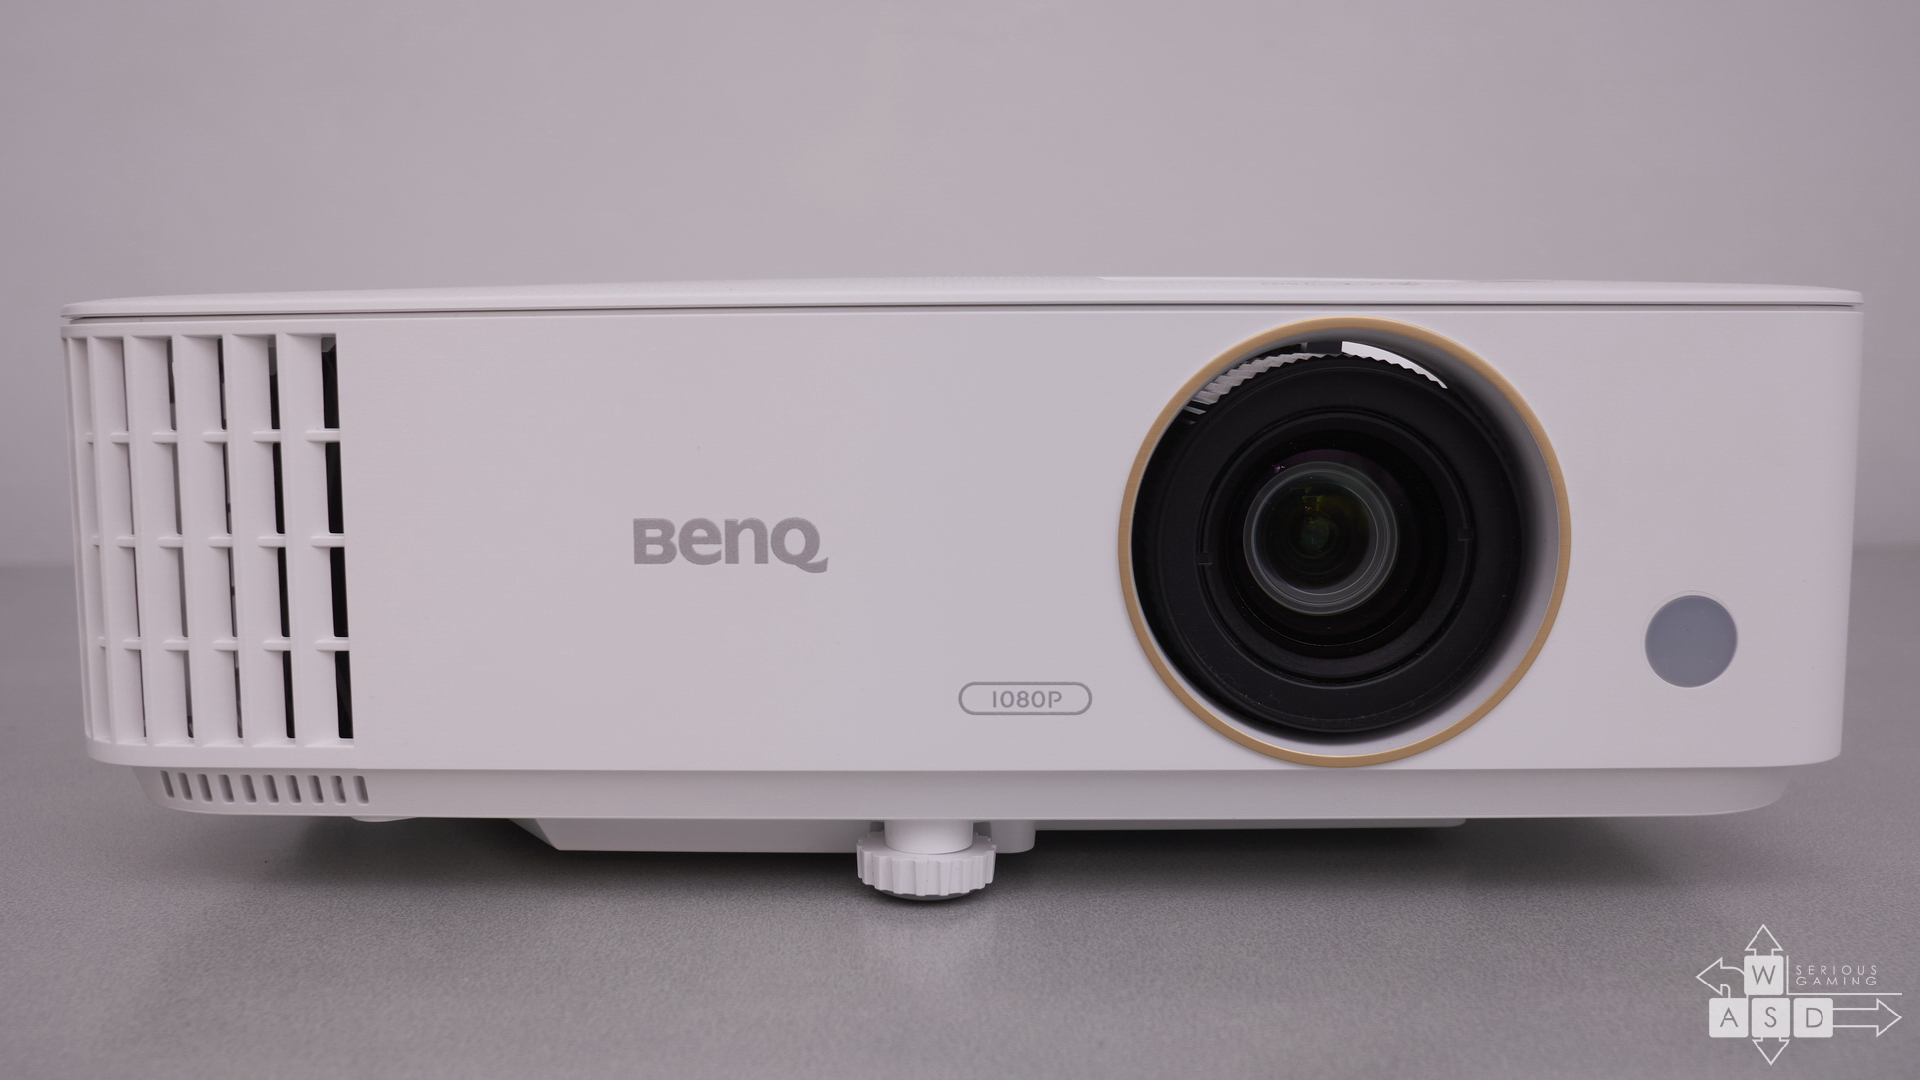 Benq TH585 & TH 685 review - input lag tests   WASD